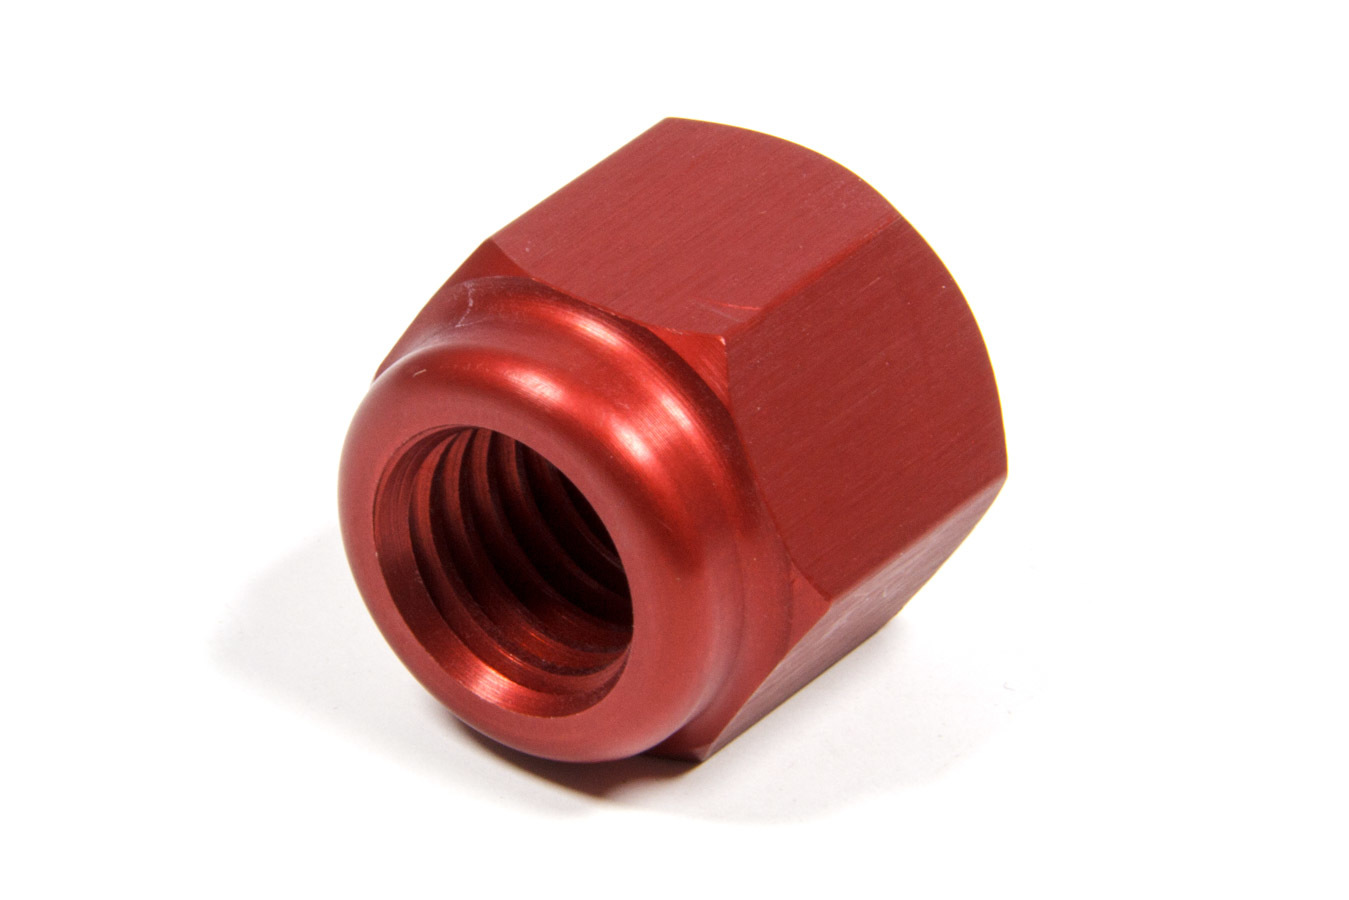 Sander Engineering S113 Lug Nut, 5/8-11 in Thread, 1 in Hex Head, Open End, Aluminum, Red Anodize, Each